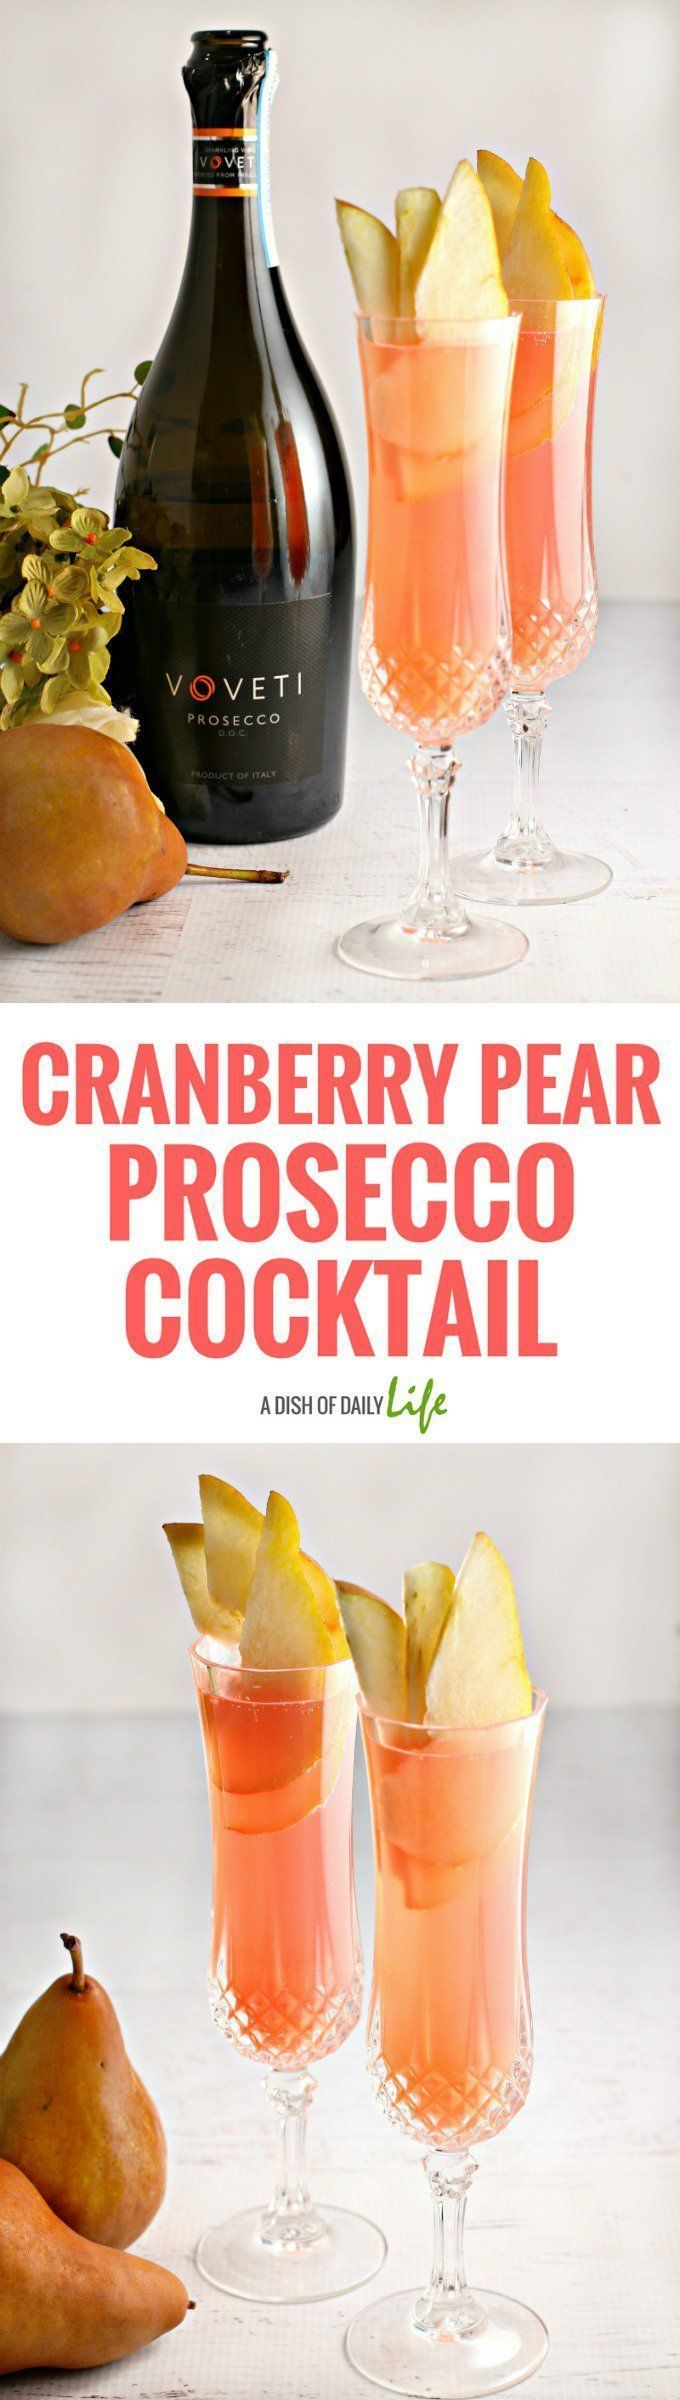 This Cranberry Pear Prosecco cocktail recipe is amazingly refreshing with a delicate fizz - an easy spring cocktail that you can make in just 5 minutes! It's perfect for your Easter dinner, Mother's Day brunch, wedding and baby showers, or any other sprin